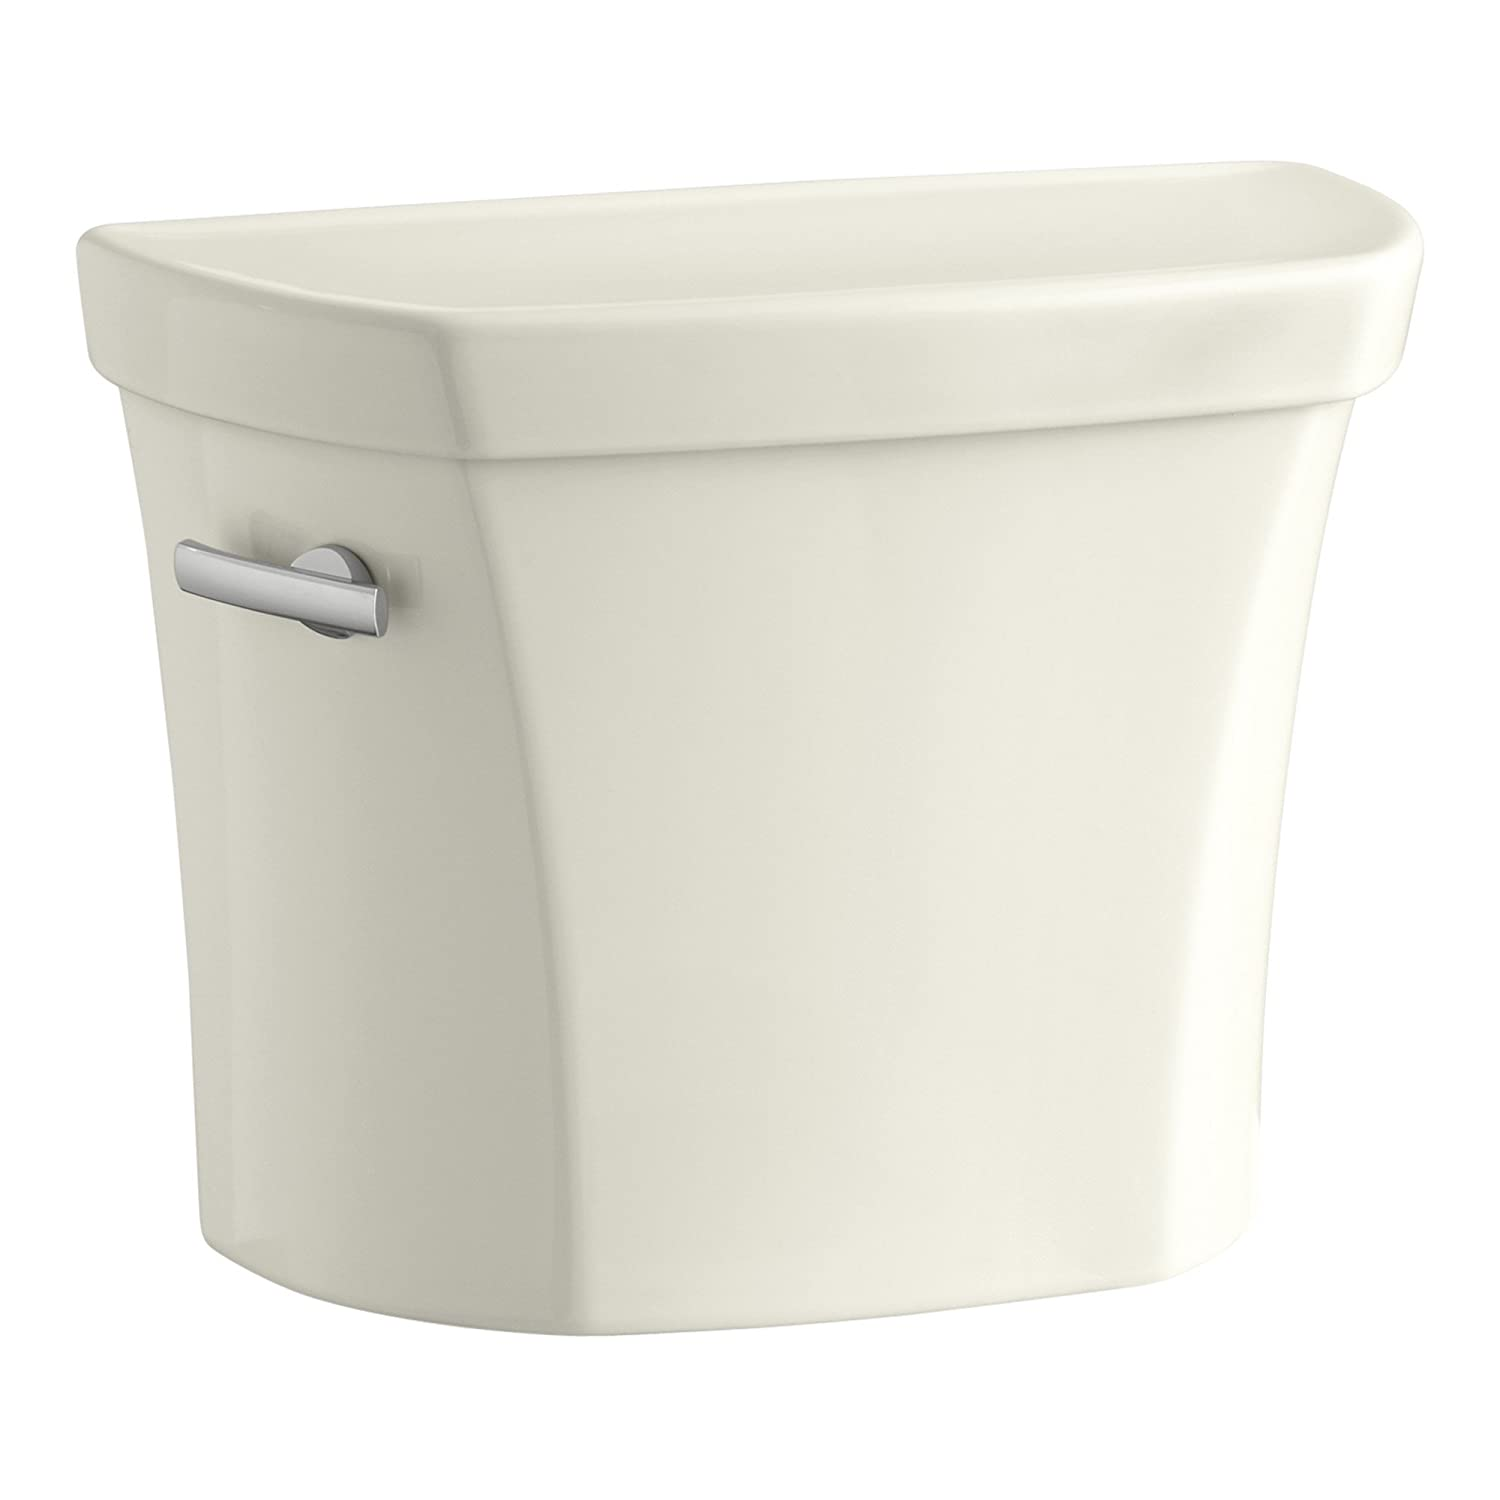 KOHLER K-5311-96 Wellworth 1.28 GPF Toilet Tank for Concealed Trapway Bowl with Left-Hand Trip Lever, Biscuit